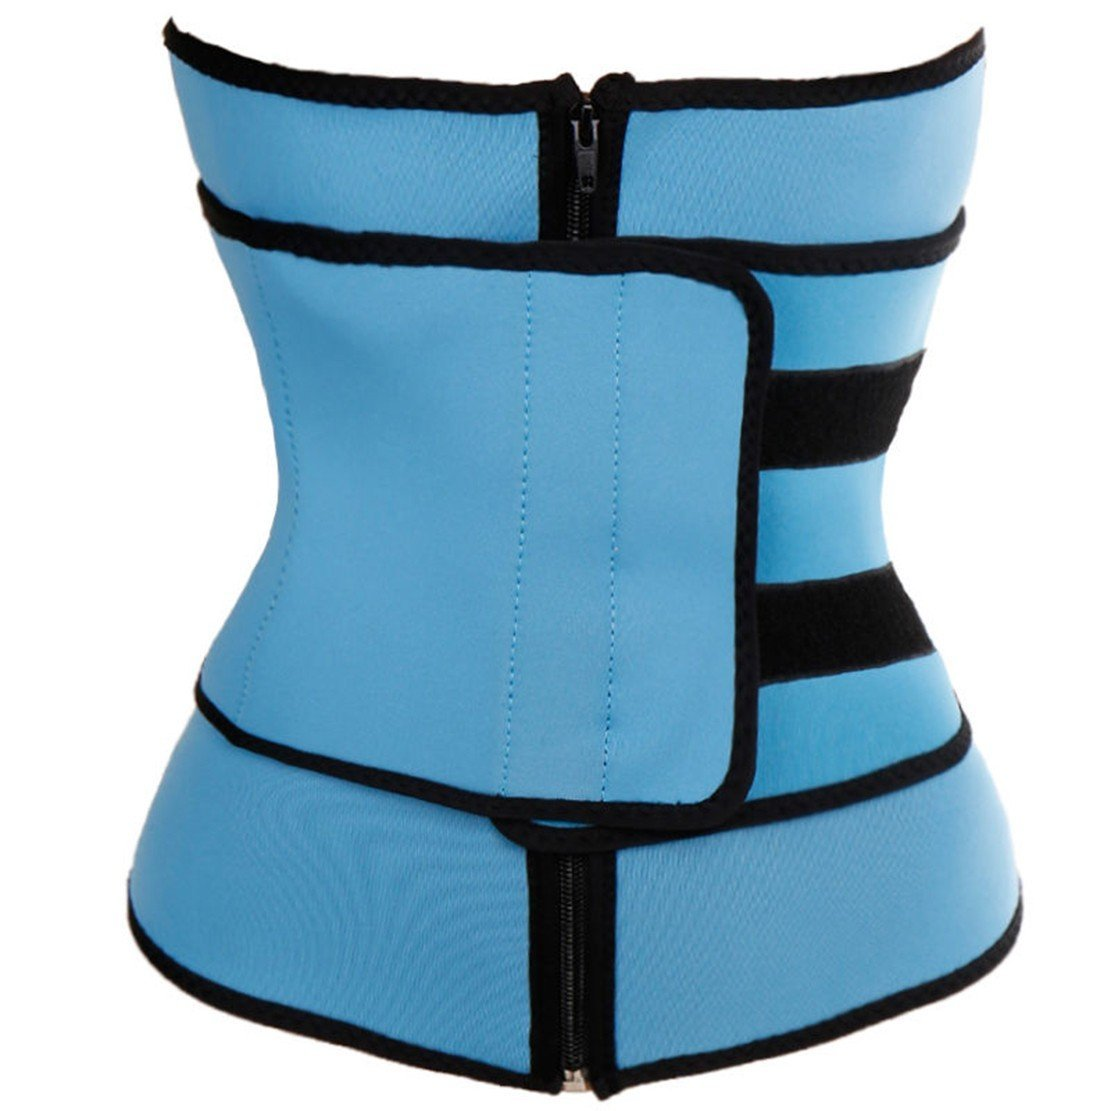 CROSS1946 Men's Waist Trainer Corsets Workout for Body Weight Loss Sweat Fitness Fat Burner Trimmer Back Support